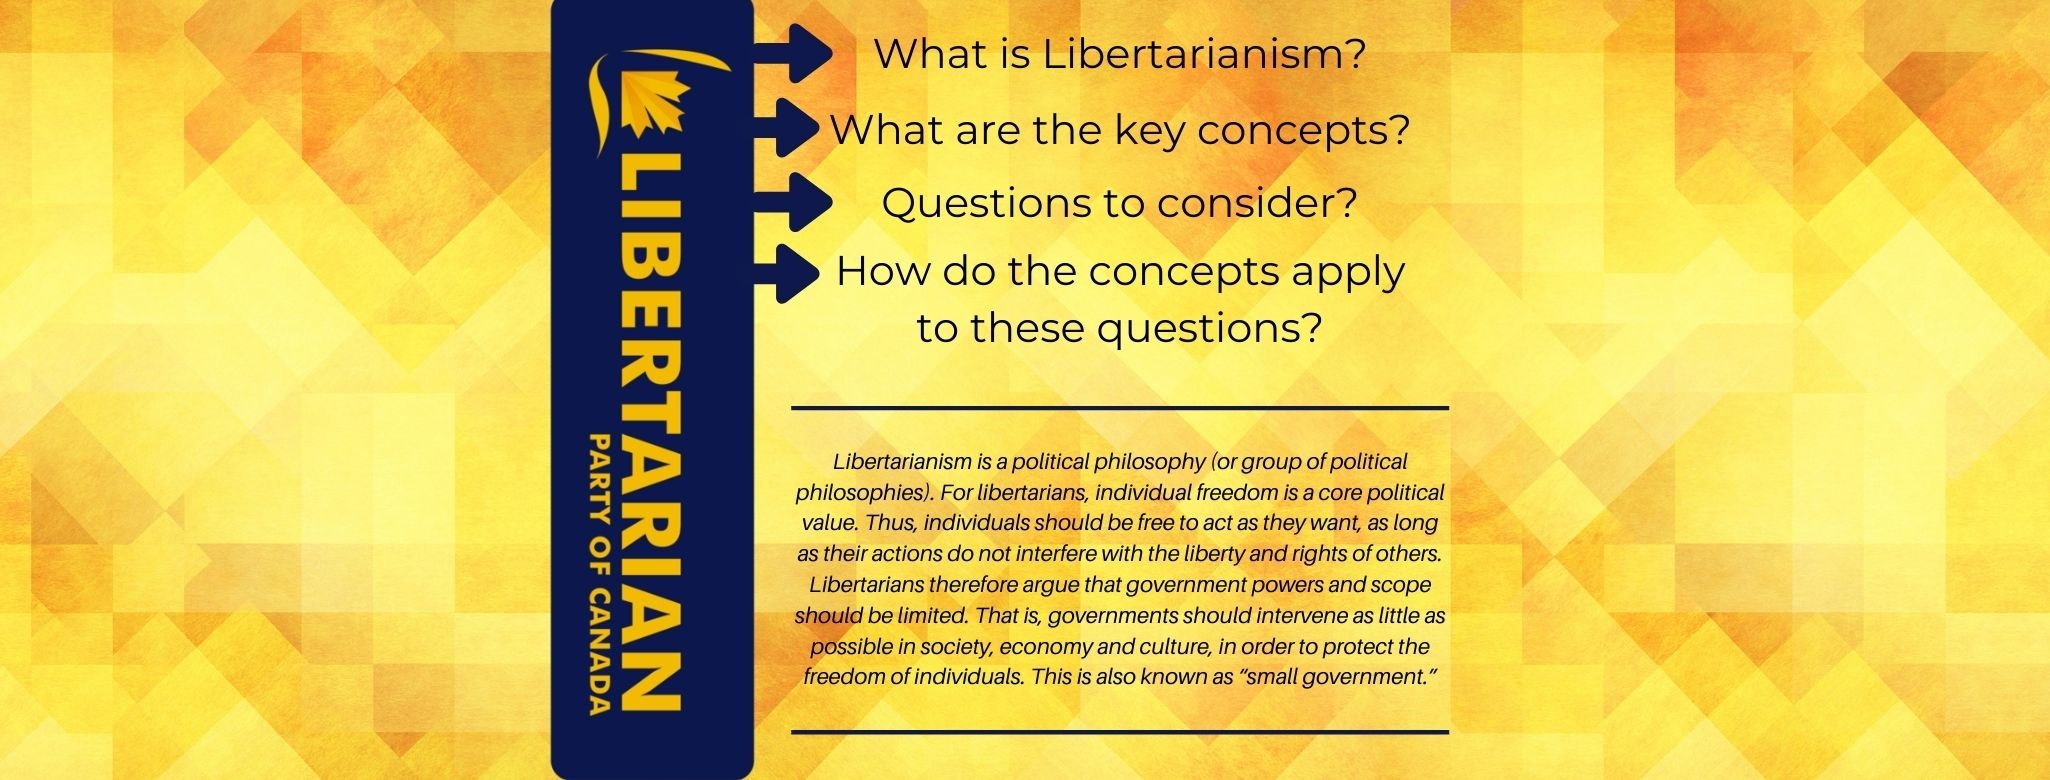 What is Libertarianism